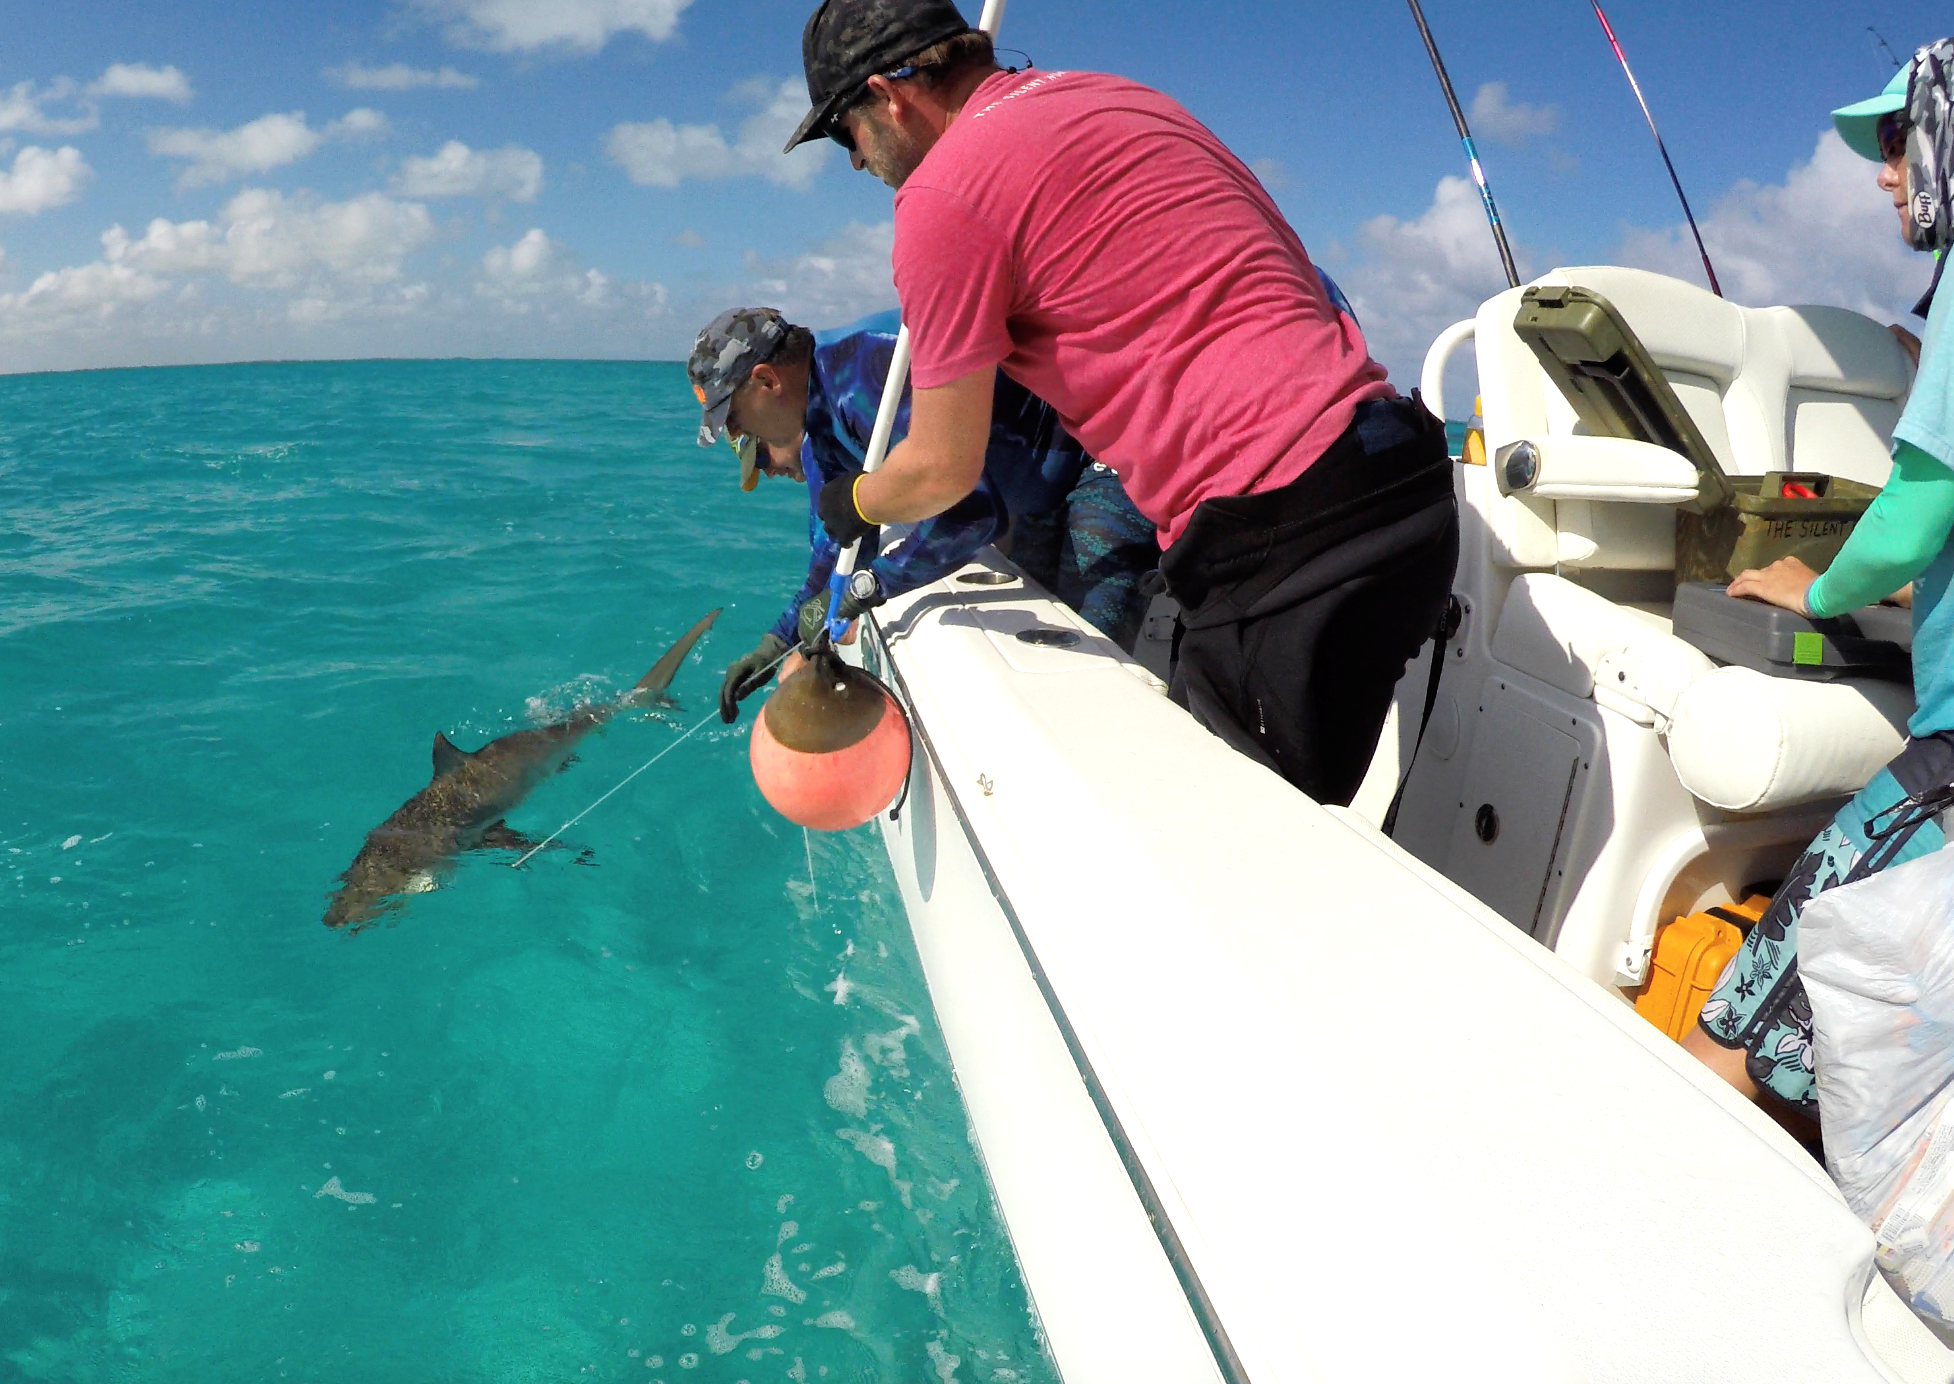 Guests Andy and Nicky help Tristan secure the shark